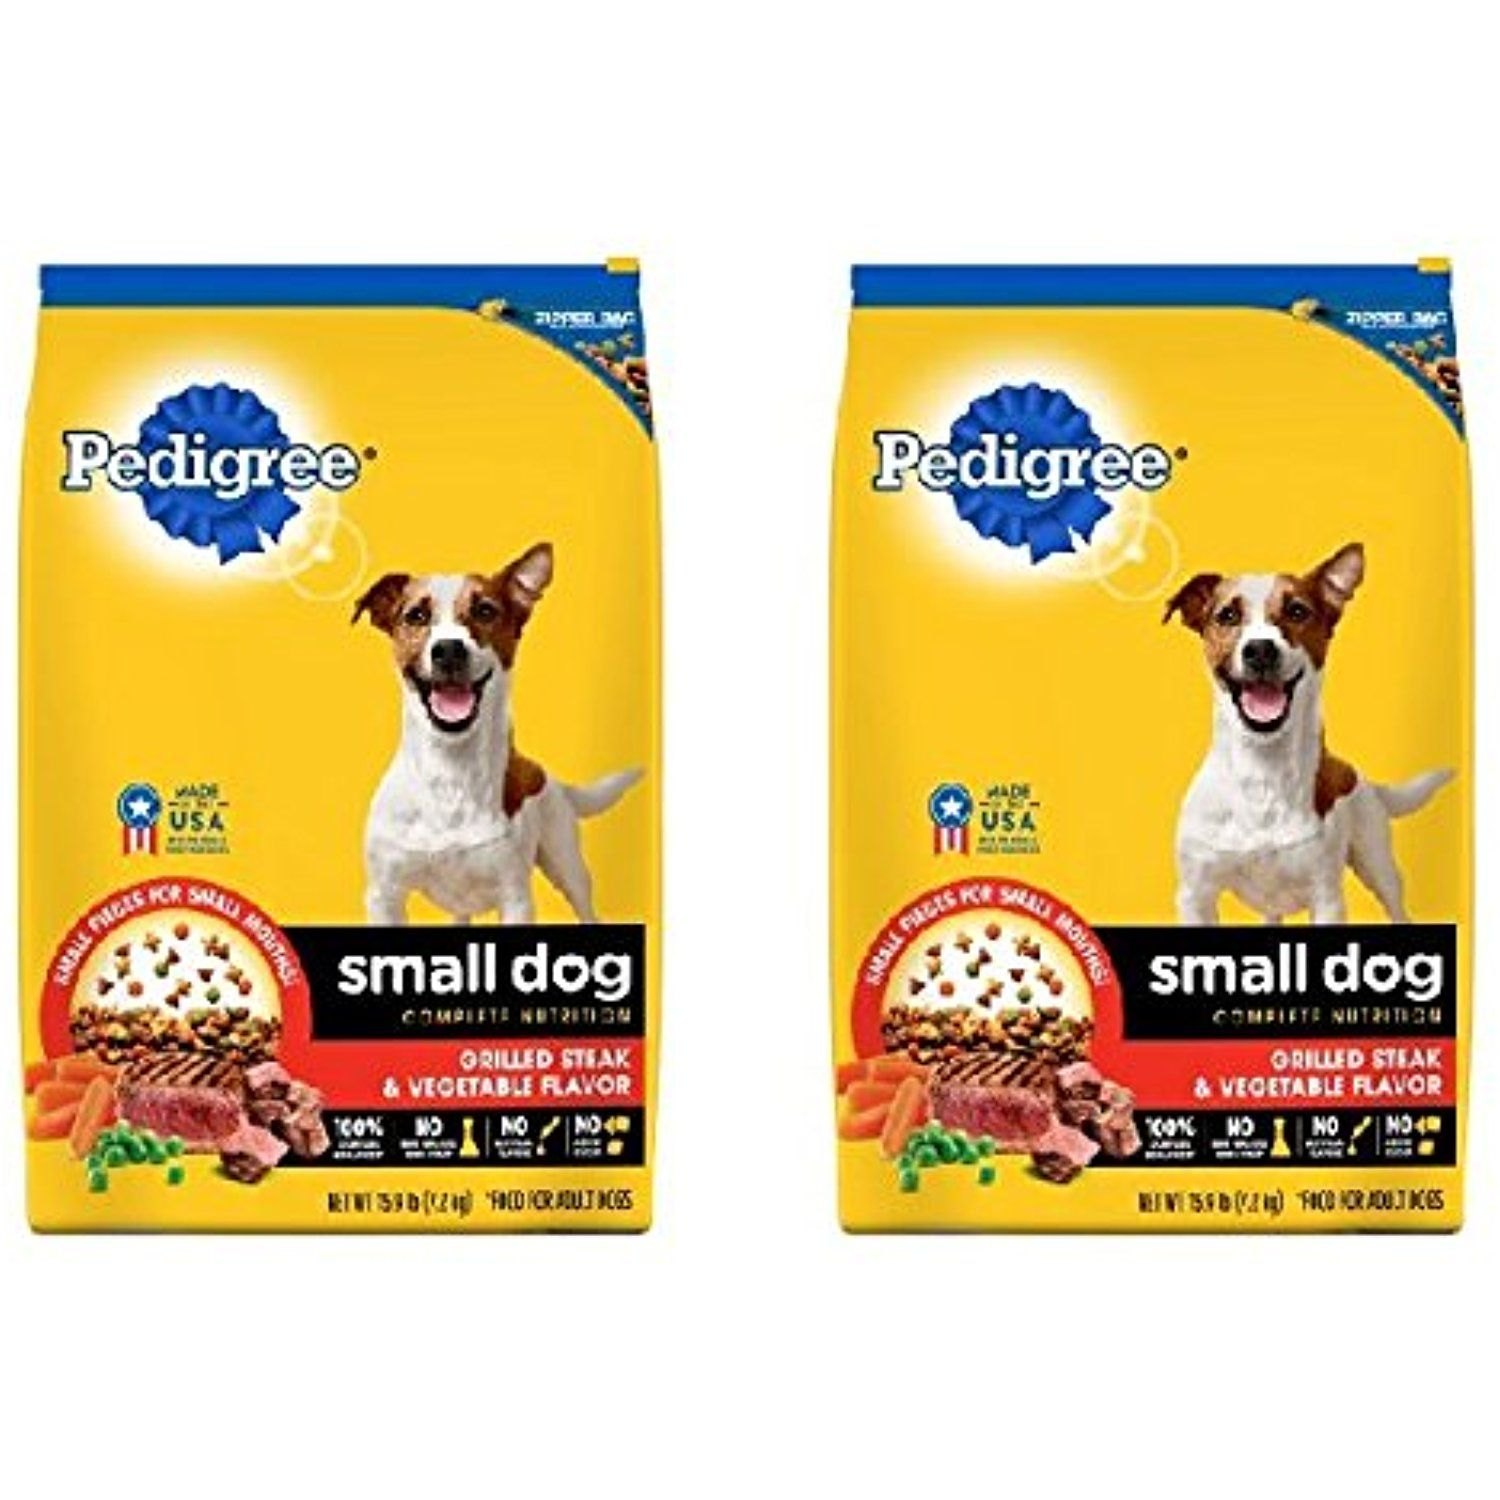 Pedigree Small Breed Adult Dry Dog Food 15 9 Lbs Pack Of 2